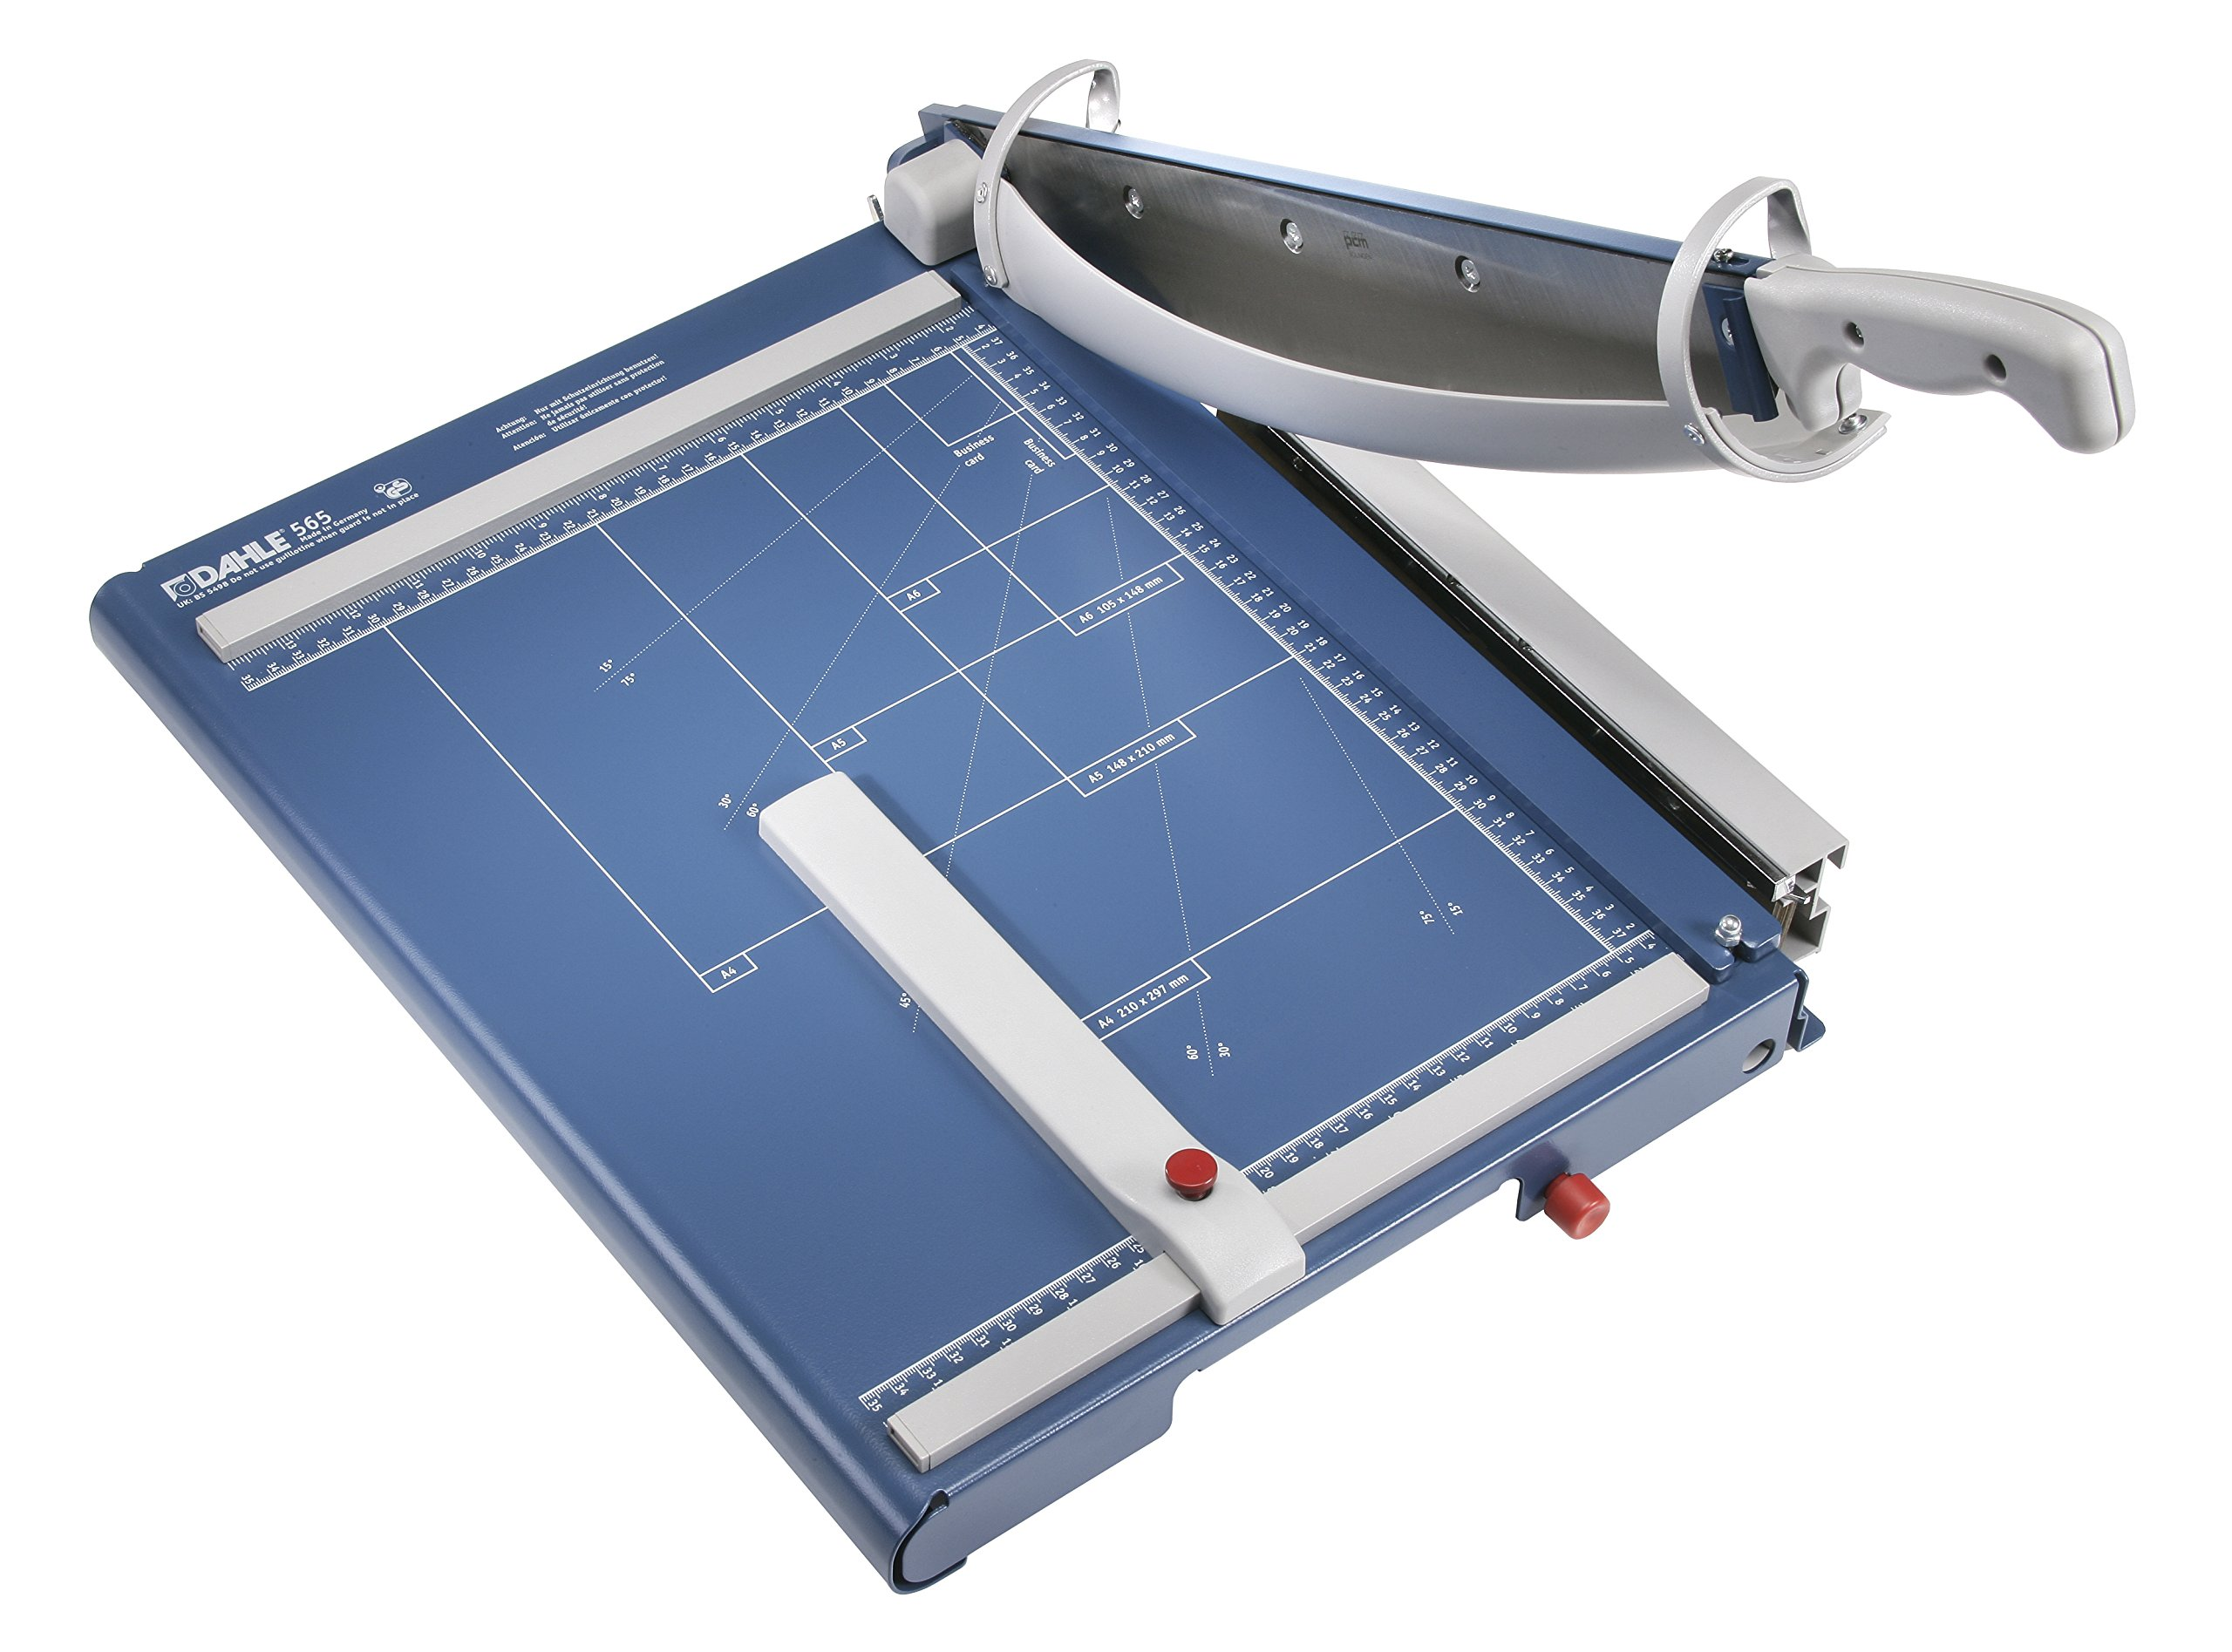 Dahle 565 Premium Guillotine Trimmer, 15-1/8'' Cut Length, 35 Sheet Capacity, Self-Sharpening Blade, Automatic Clamp, w/Safety Guard